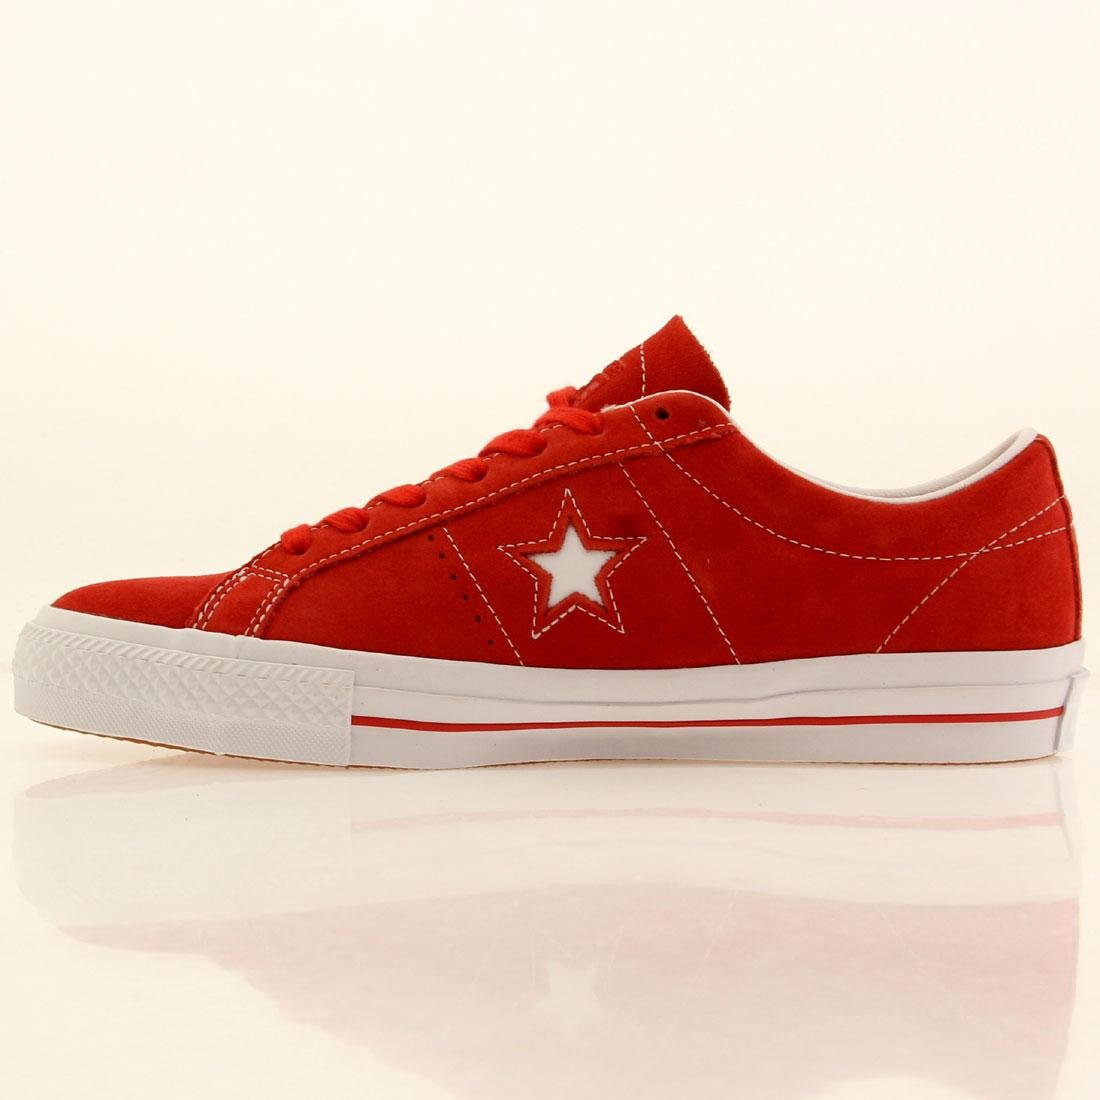 Red Shoes Converse149865c 40 Rouge GKeDB9hy